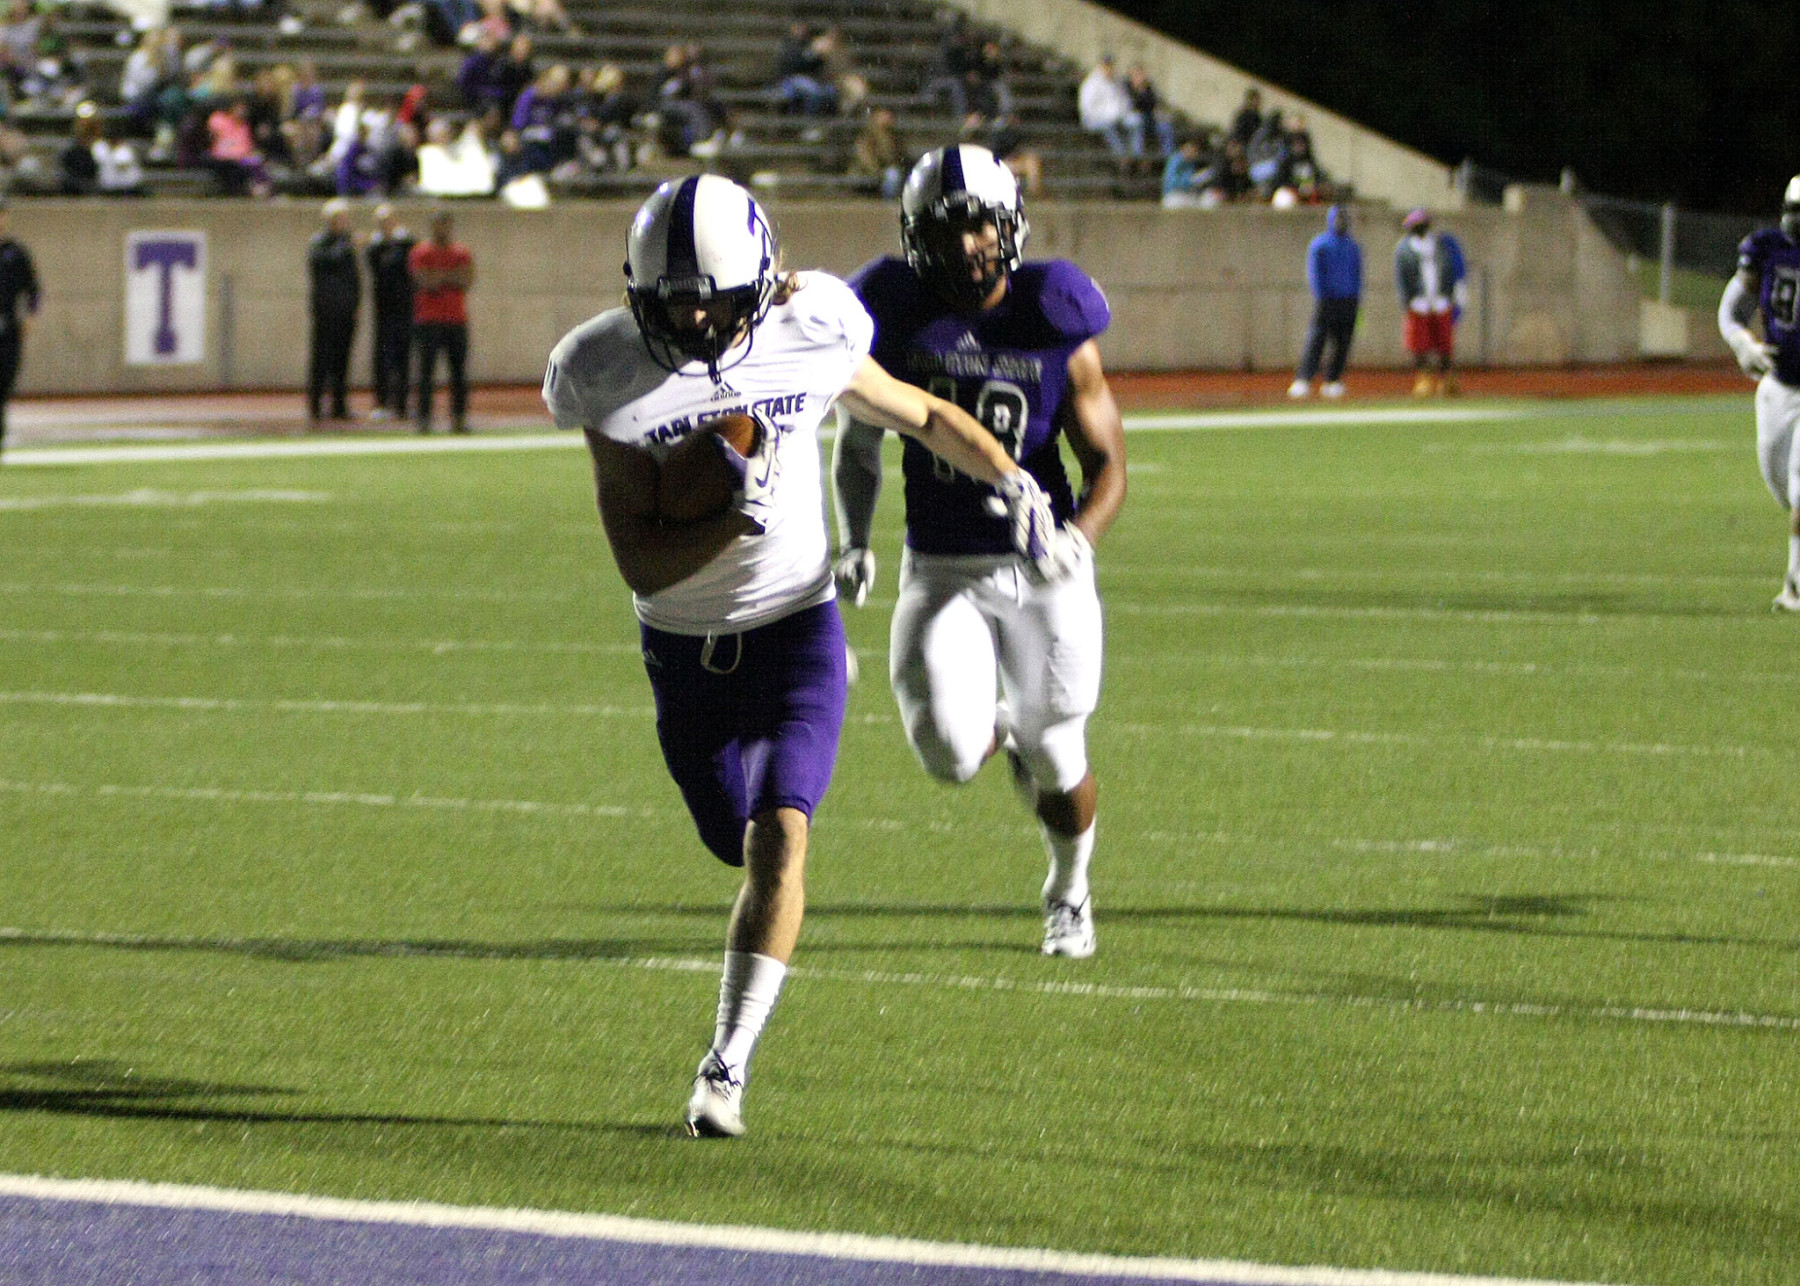 Cason Fornes hauled in two touchdown passes for White in Saturday's Tarleton spring game. || BRAD KEITH/TheFlashToday.com